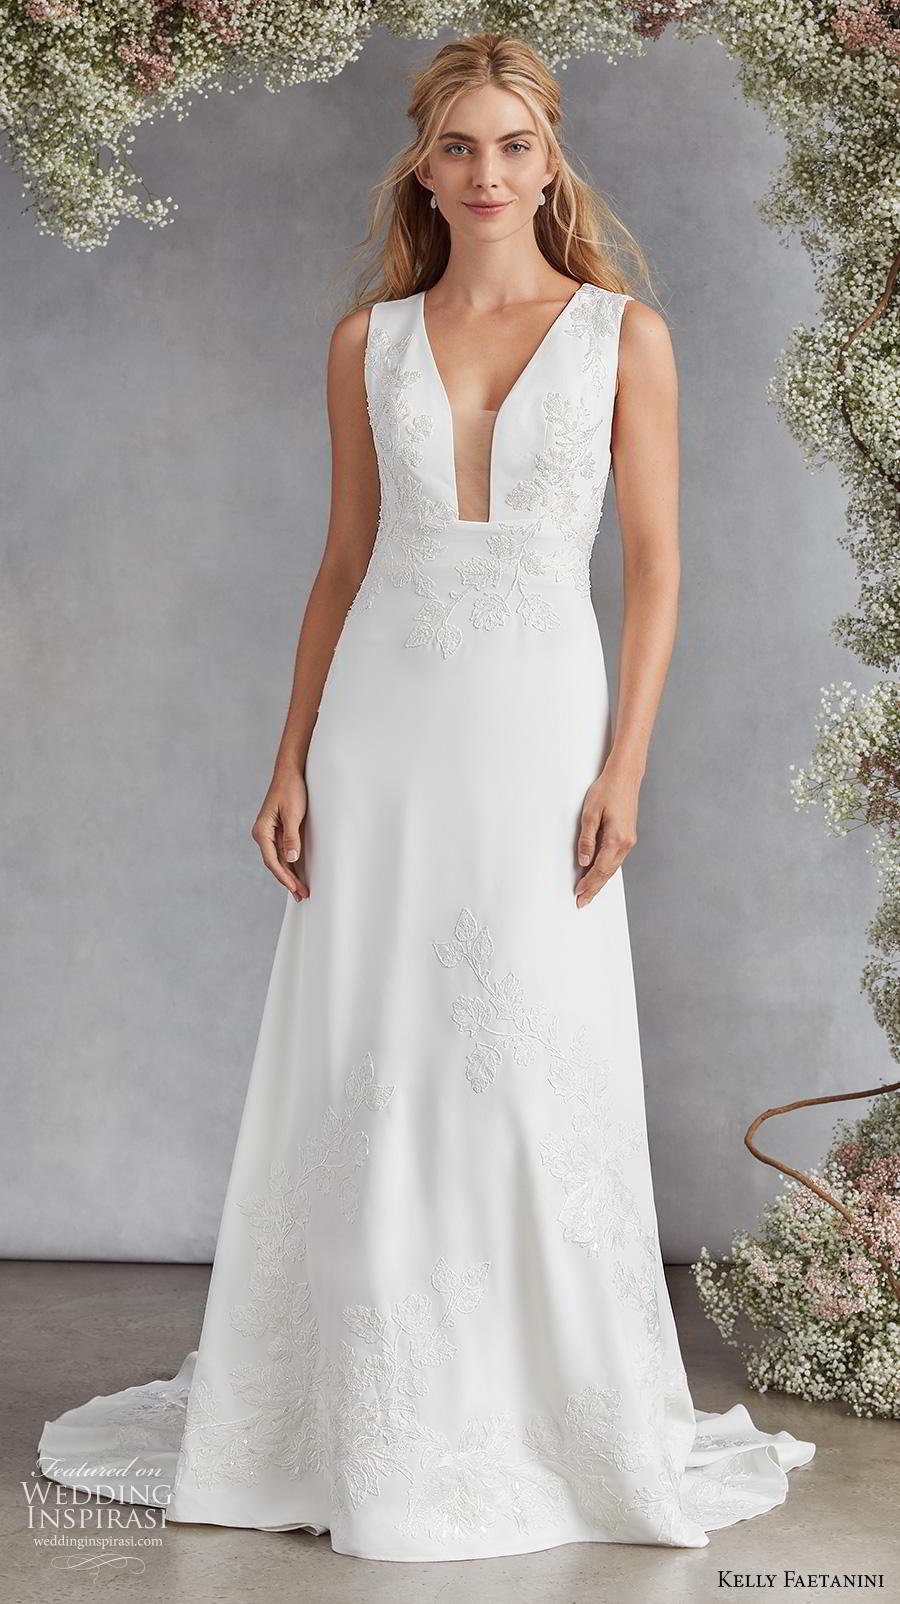 kelly faetanini fall 2020 bridal sleeveless deep plunging v neck light embellishment romantic modified a  line wedding dress keyhole back medium train (4) mv